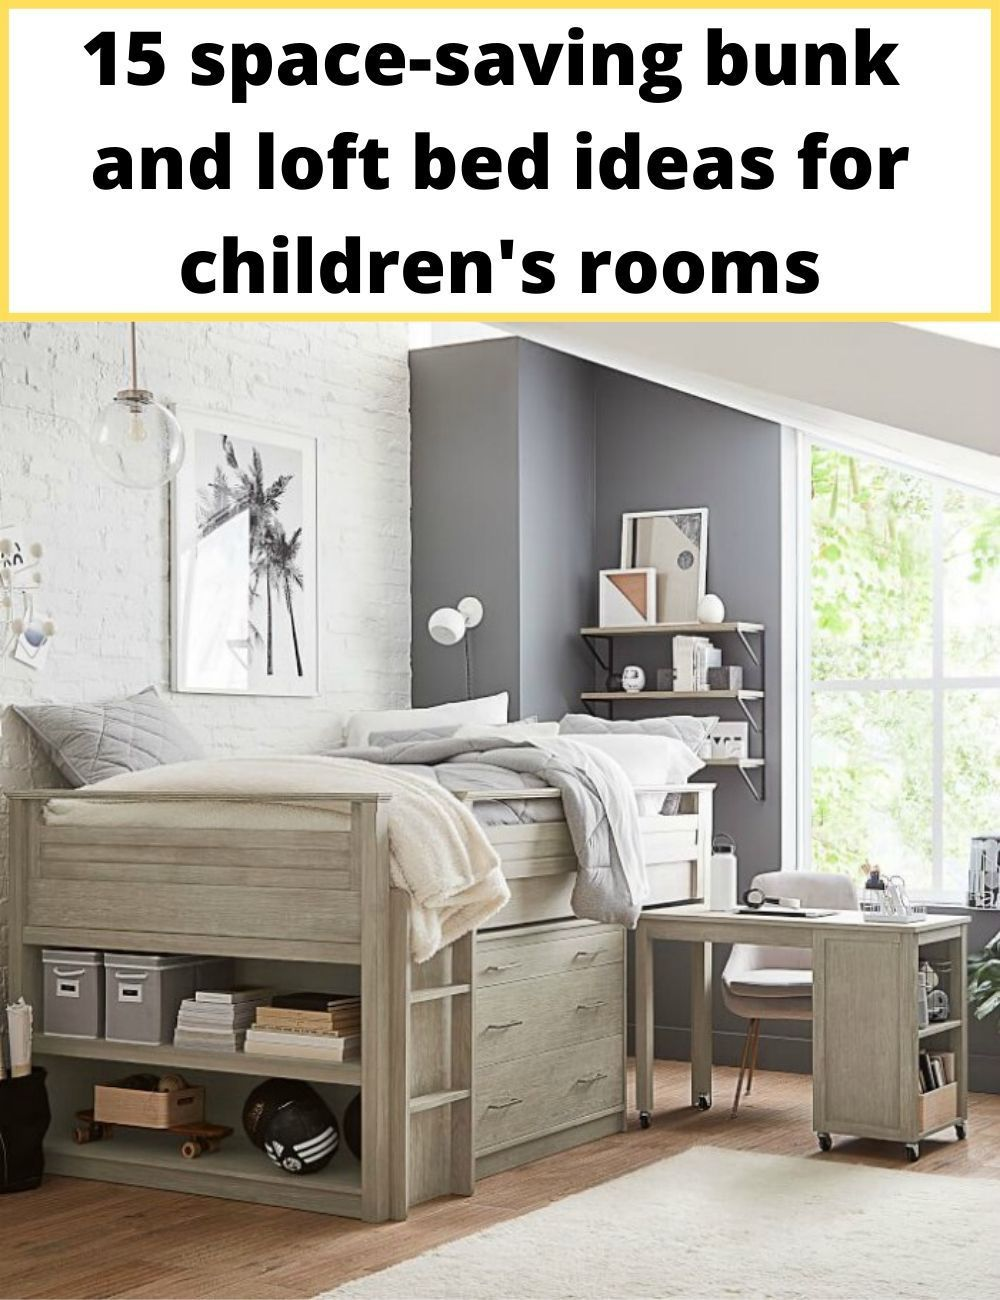 15 spacesaving bunk and loft bed ideas for children's